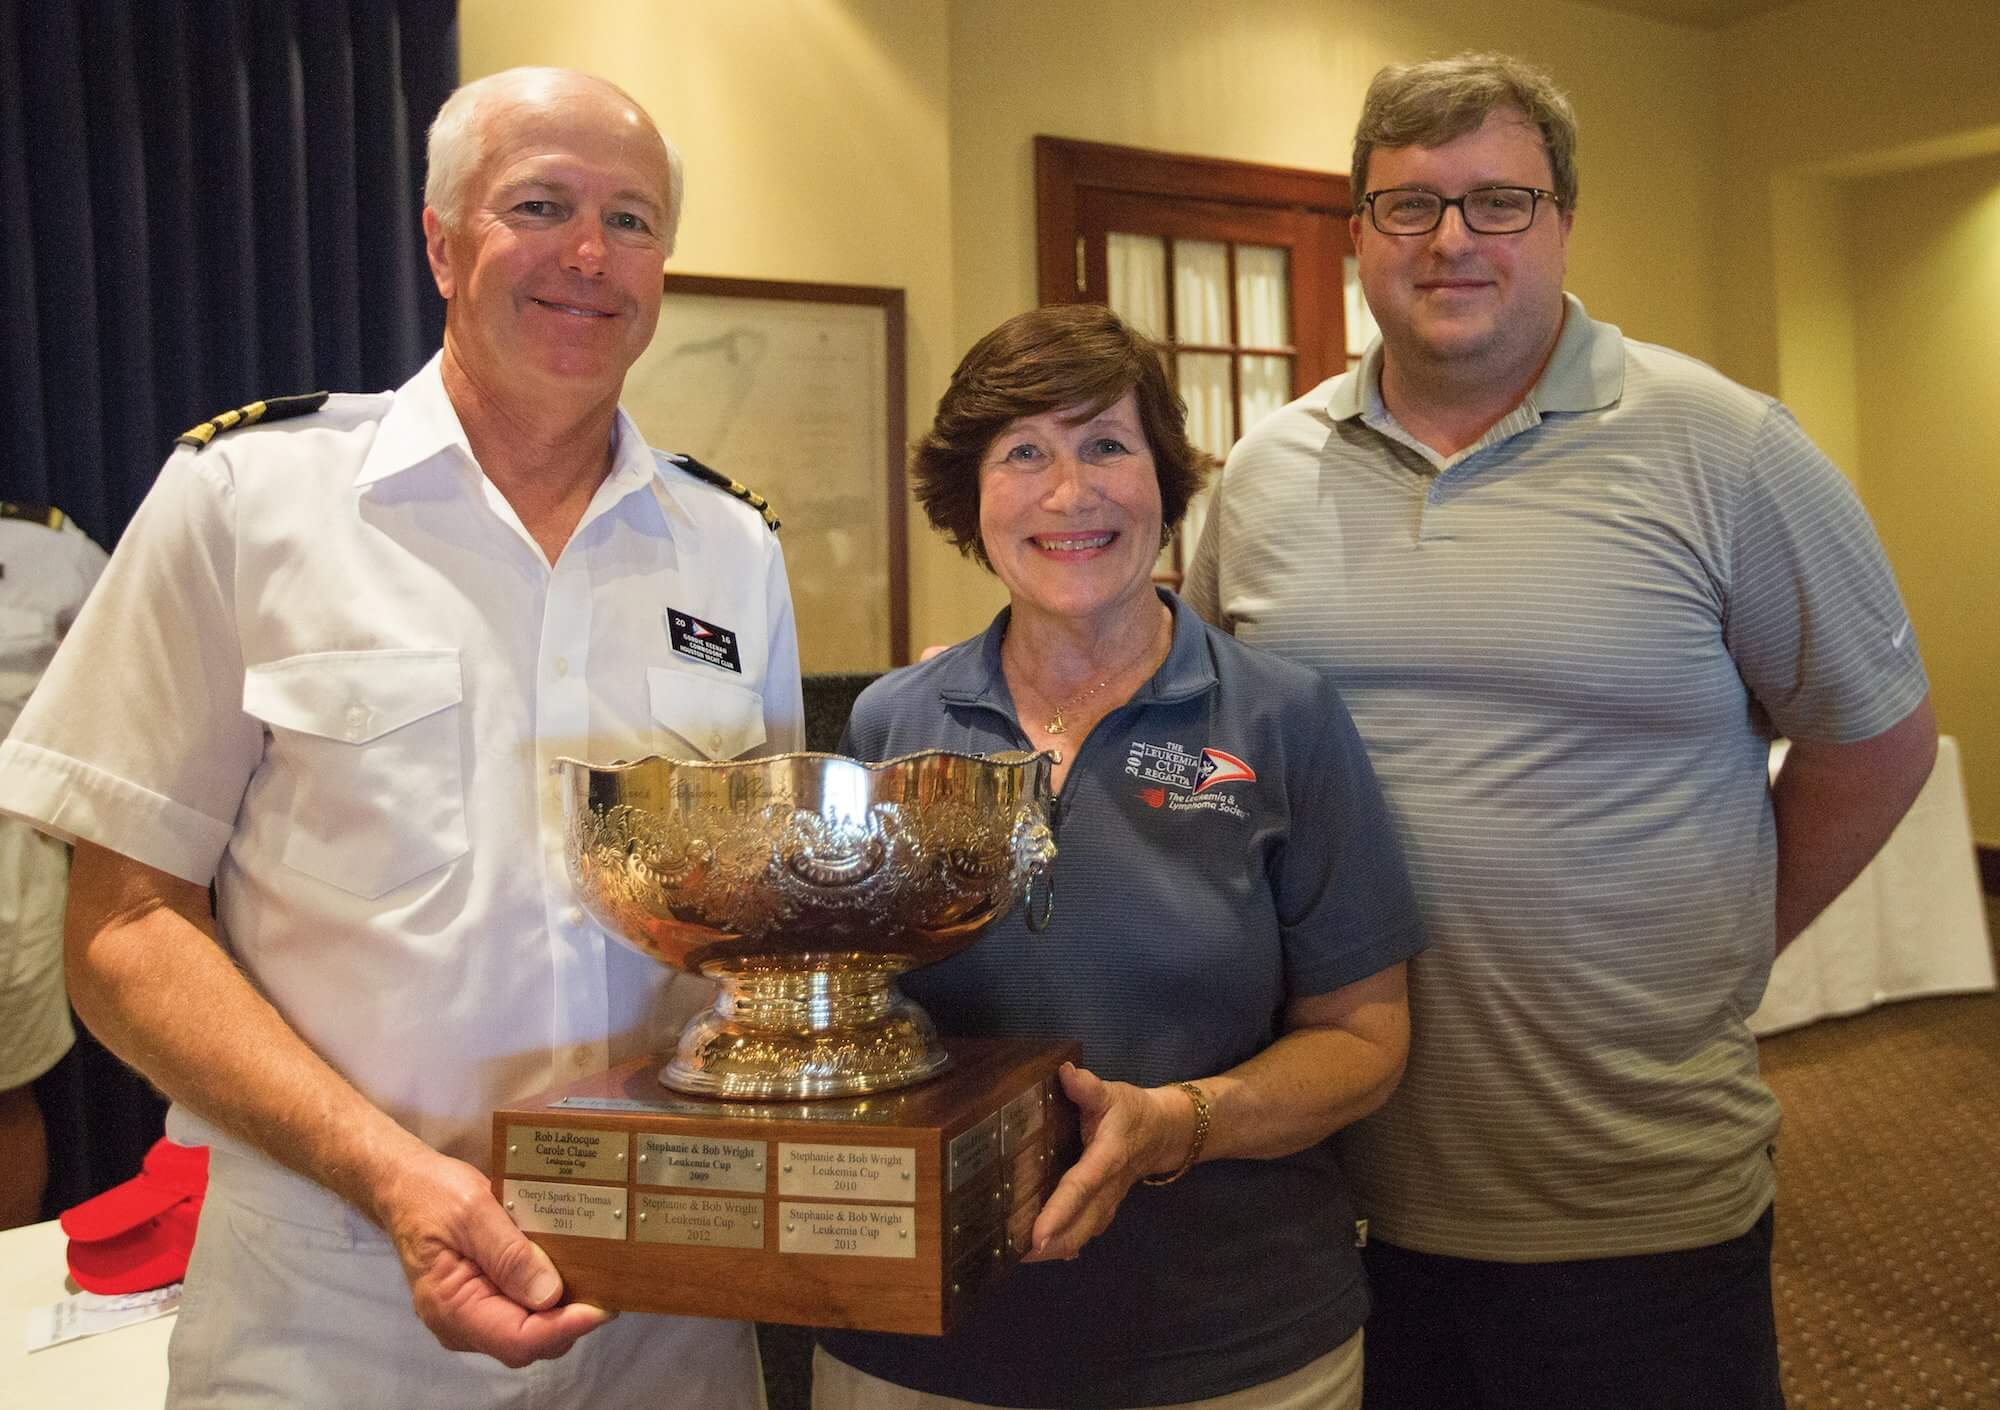 Cheryl Thomas, director of the Leukemia Cup Regatta, holds the trophy created in memory of her sister, Claudia Sparks Cannon.